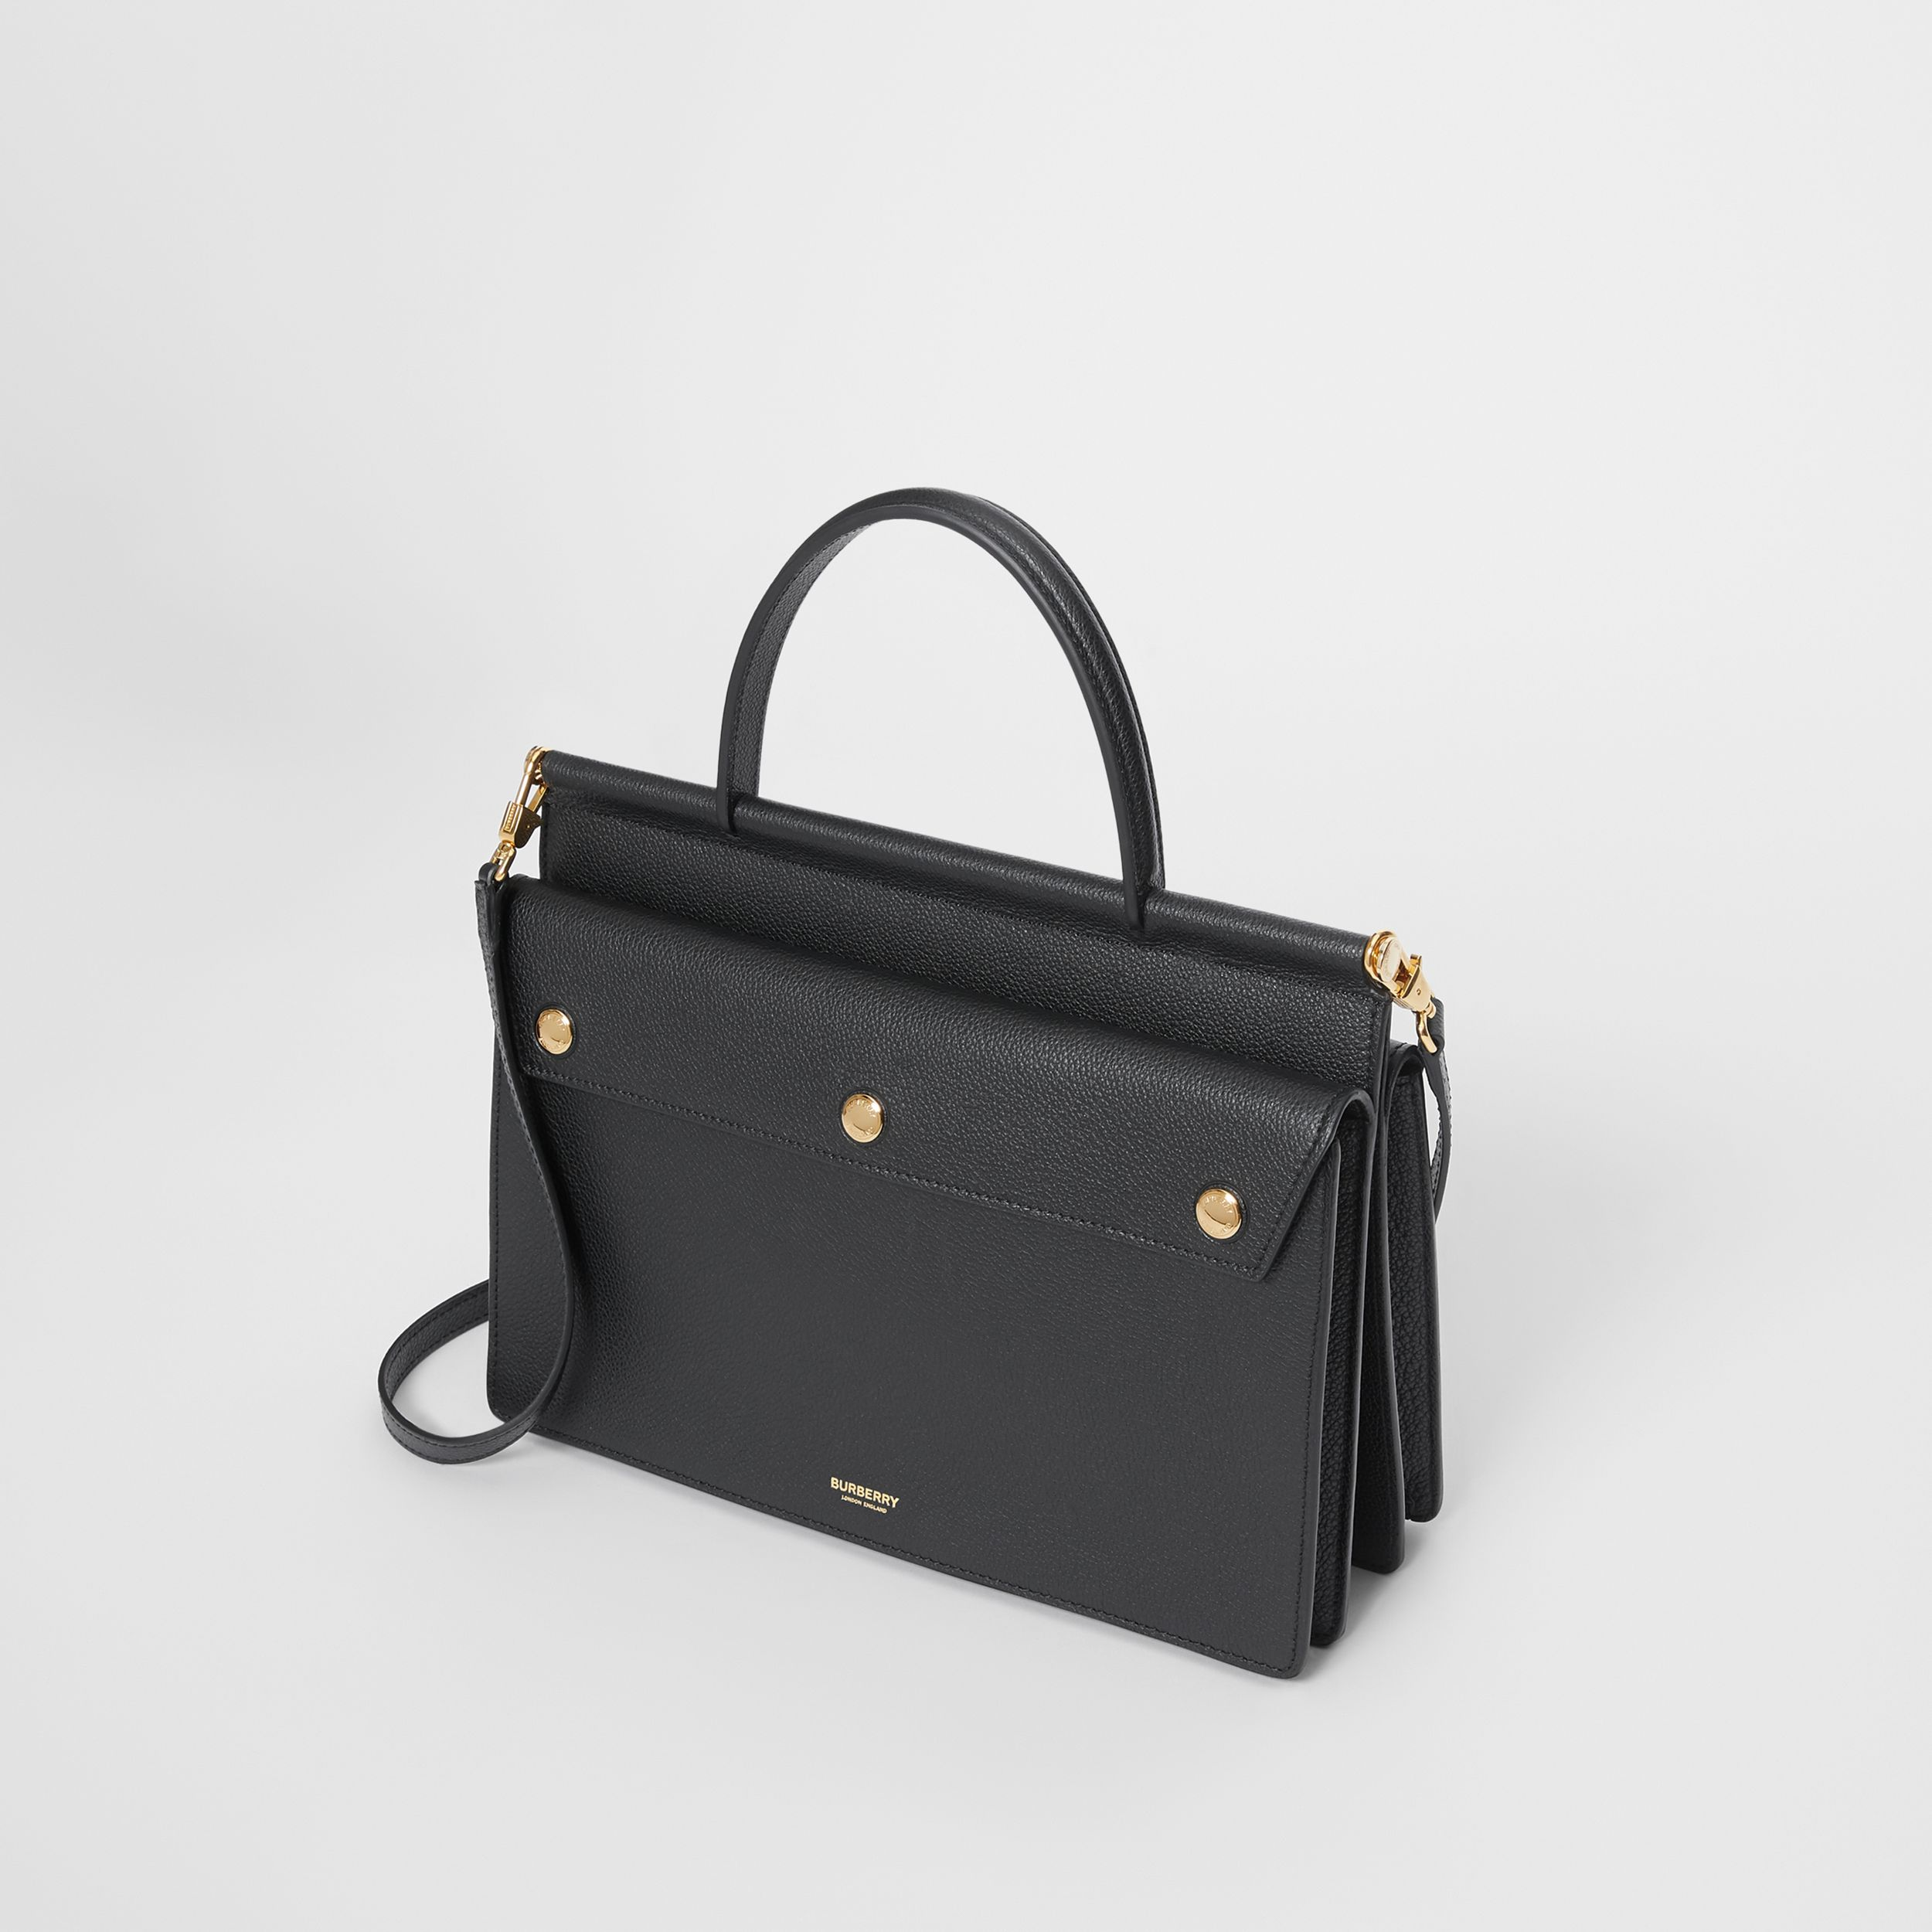 Small Leather Title Bag with Pocket Detail in Black - Women | Burberry - 4